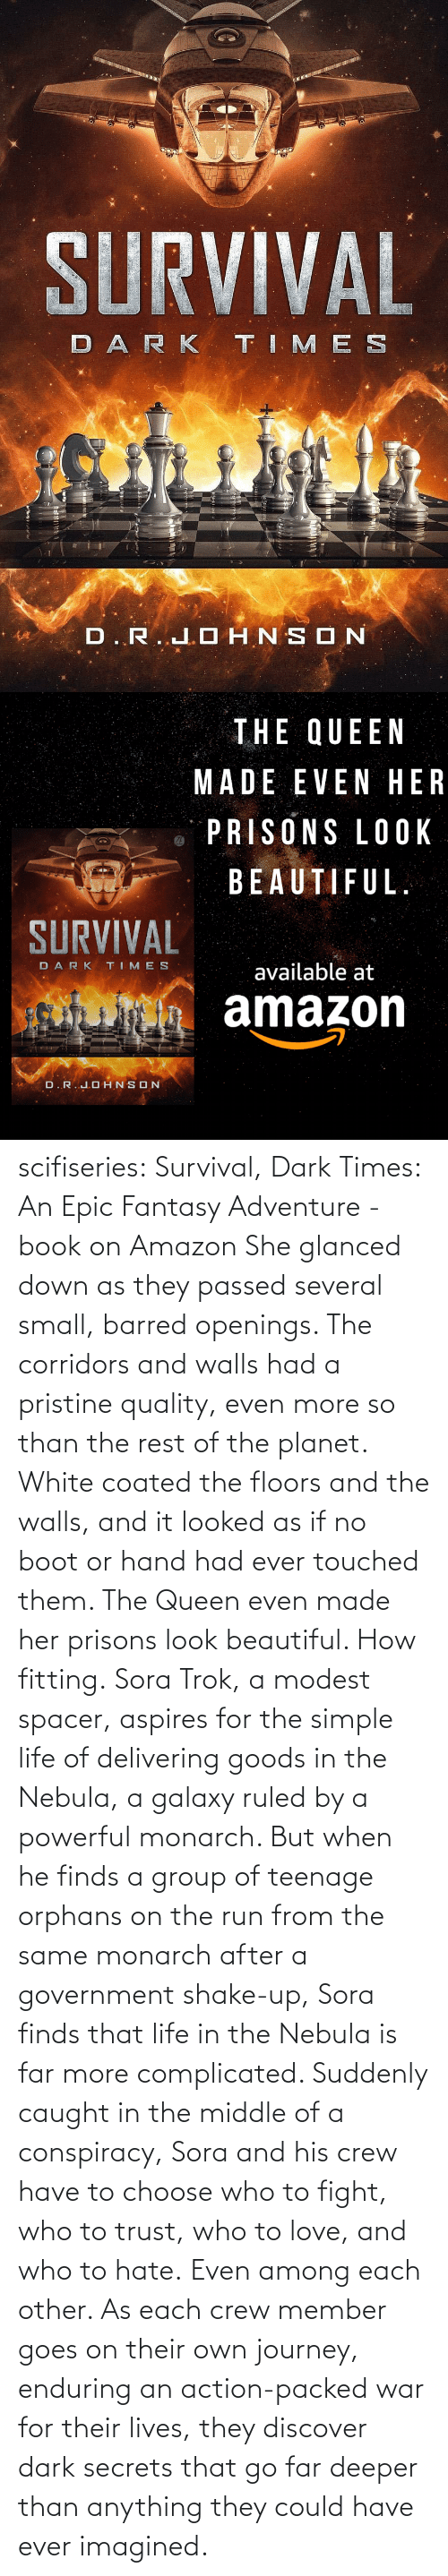 Government: scifiseries: Survival, Dark Times: An Epic Fantasy Adventure - book on Amazon  She glanced down as they  passed several small, barred openings. The corridors and walls had a  pristine quality, even more so than the rest of the planet. White coated  the floors and the walls, and it looked as if no boot or hand had ever  touched them.  The Queen even made her prisons look beautiful.  How fitting. Sora  Trok, a modest spacer, aspires for the simple life of delivering goods  in the Nebula, a galaxy ruled by a powerful monarch. But when he finds a  group of teenage orphans on the run from the same monarch after a  government shake-up, Sora finds that life in the Nebula is far more complicated.  Suddenly  caught in the middle of a conspiracy, Sora and his crew have to choose  who to fight, who to trust, who to love, and who to hate. Even among each other.  As  each crew member goes on their own journey, enduring an action-packed  war for their lives, they discover dark secrets that go far deeper than  anything they could have ever imagined.